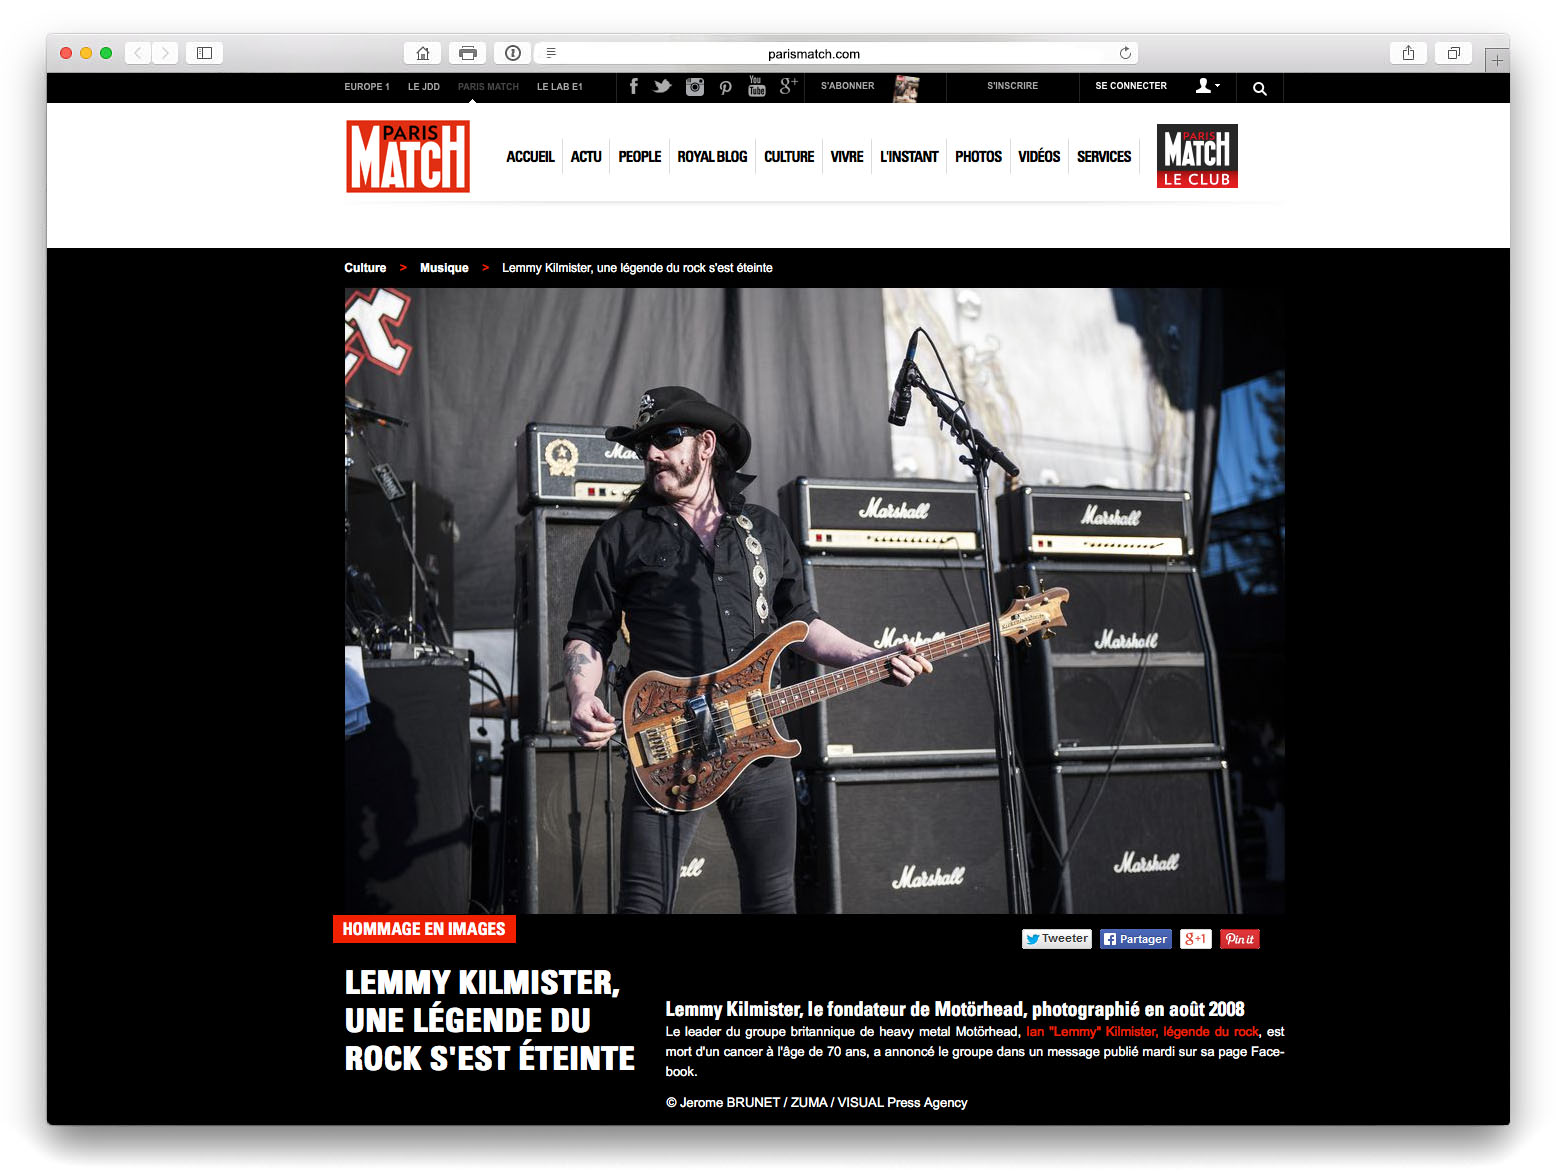 Motorhead live at the Shoreline